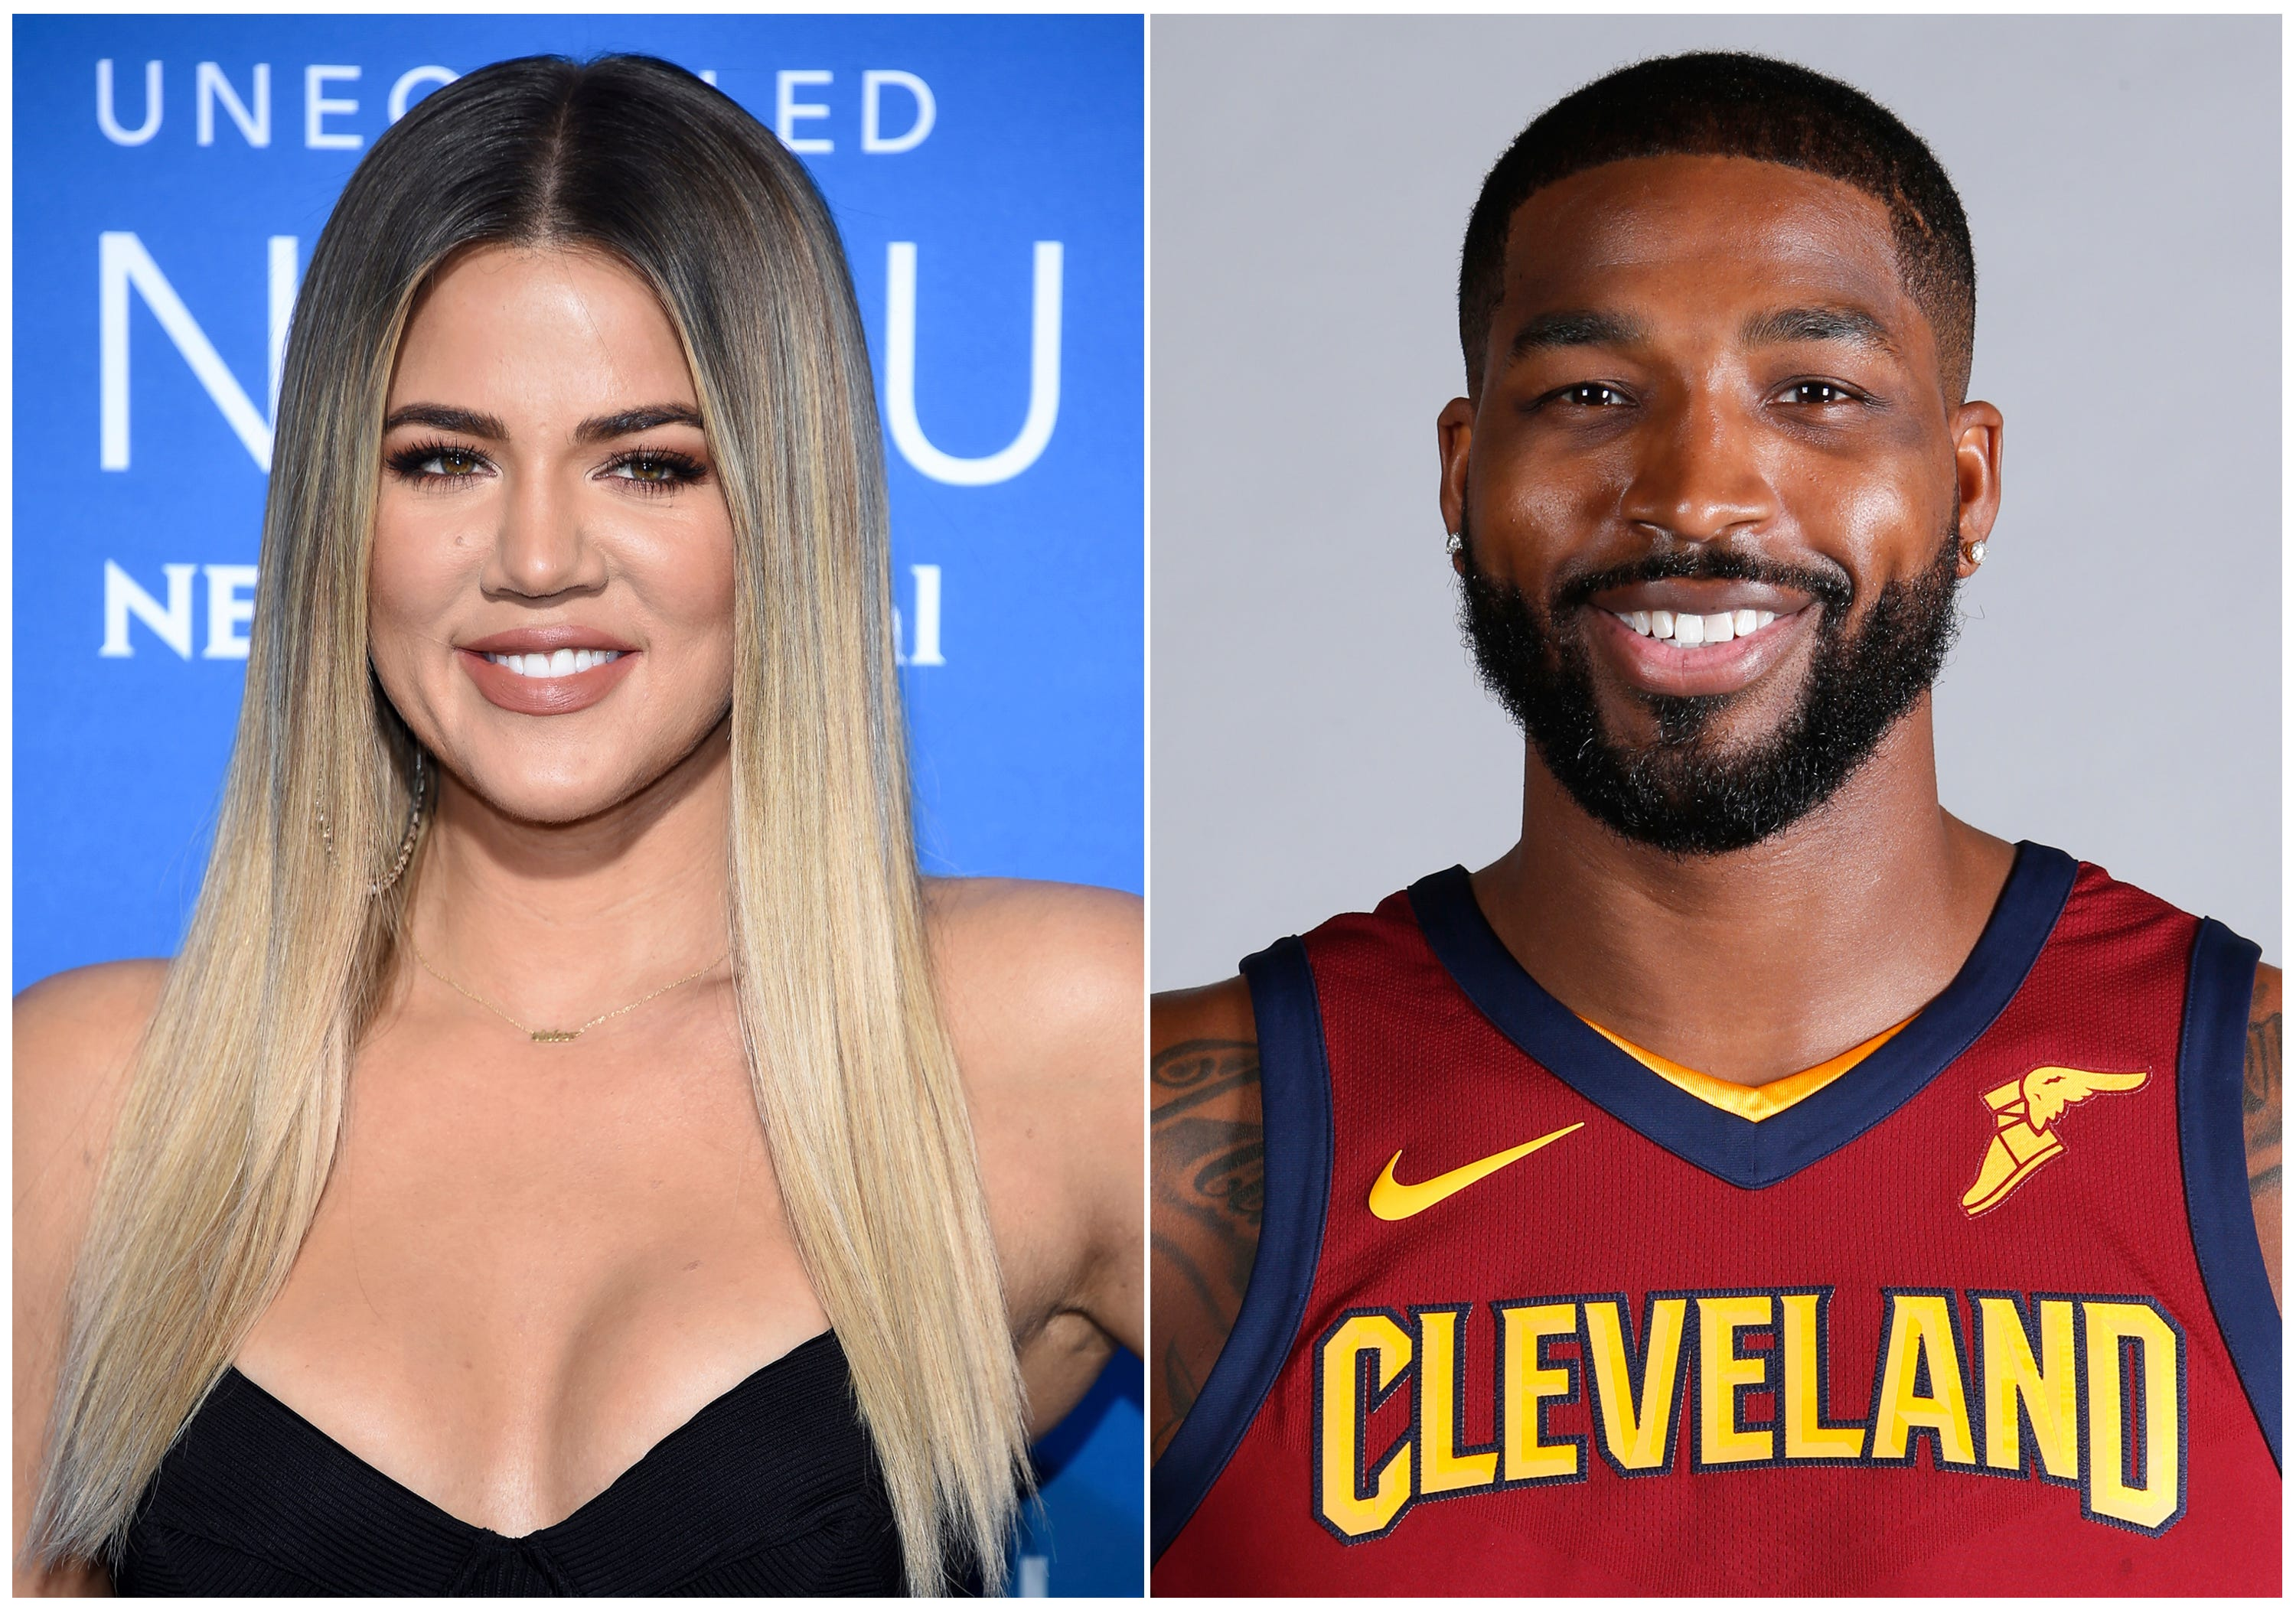 Twitter captivated byKhloe Kardashian and Tristan Thompson's reported relationship drama